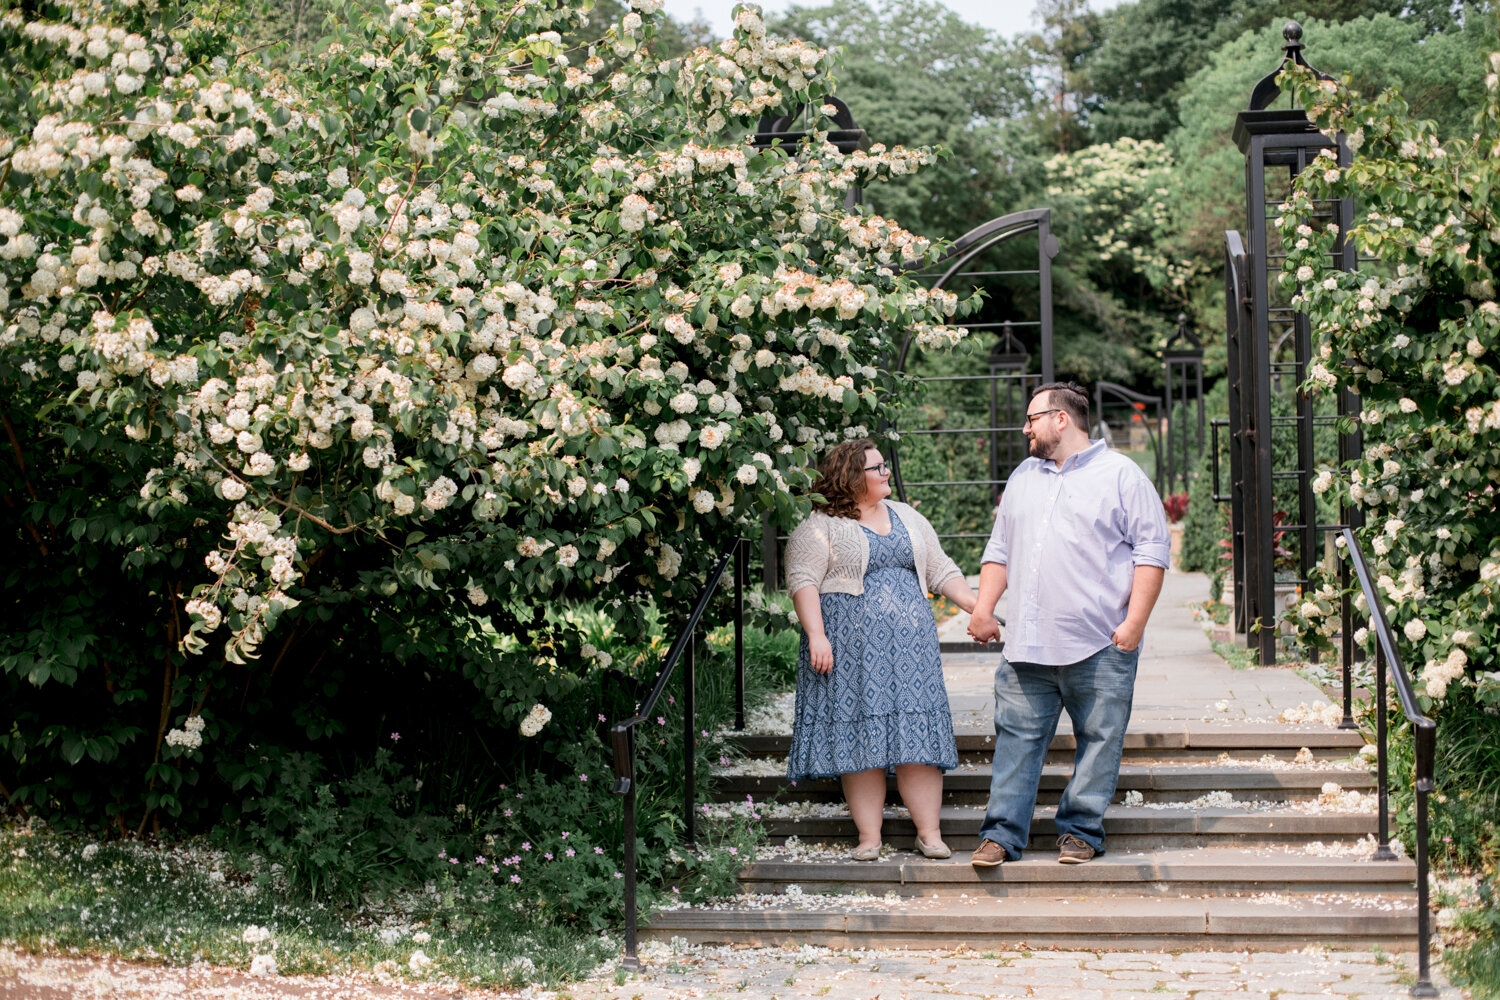 morris-arboretum-chestnut-hill-garden-engagement-session-philadelphia-wedding-photography-7.jpg